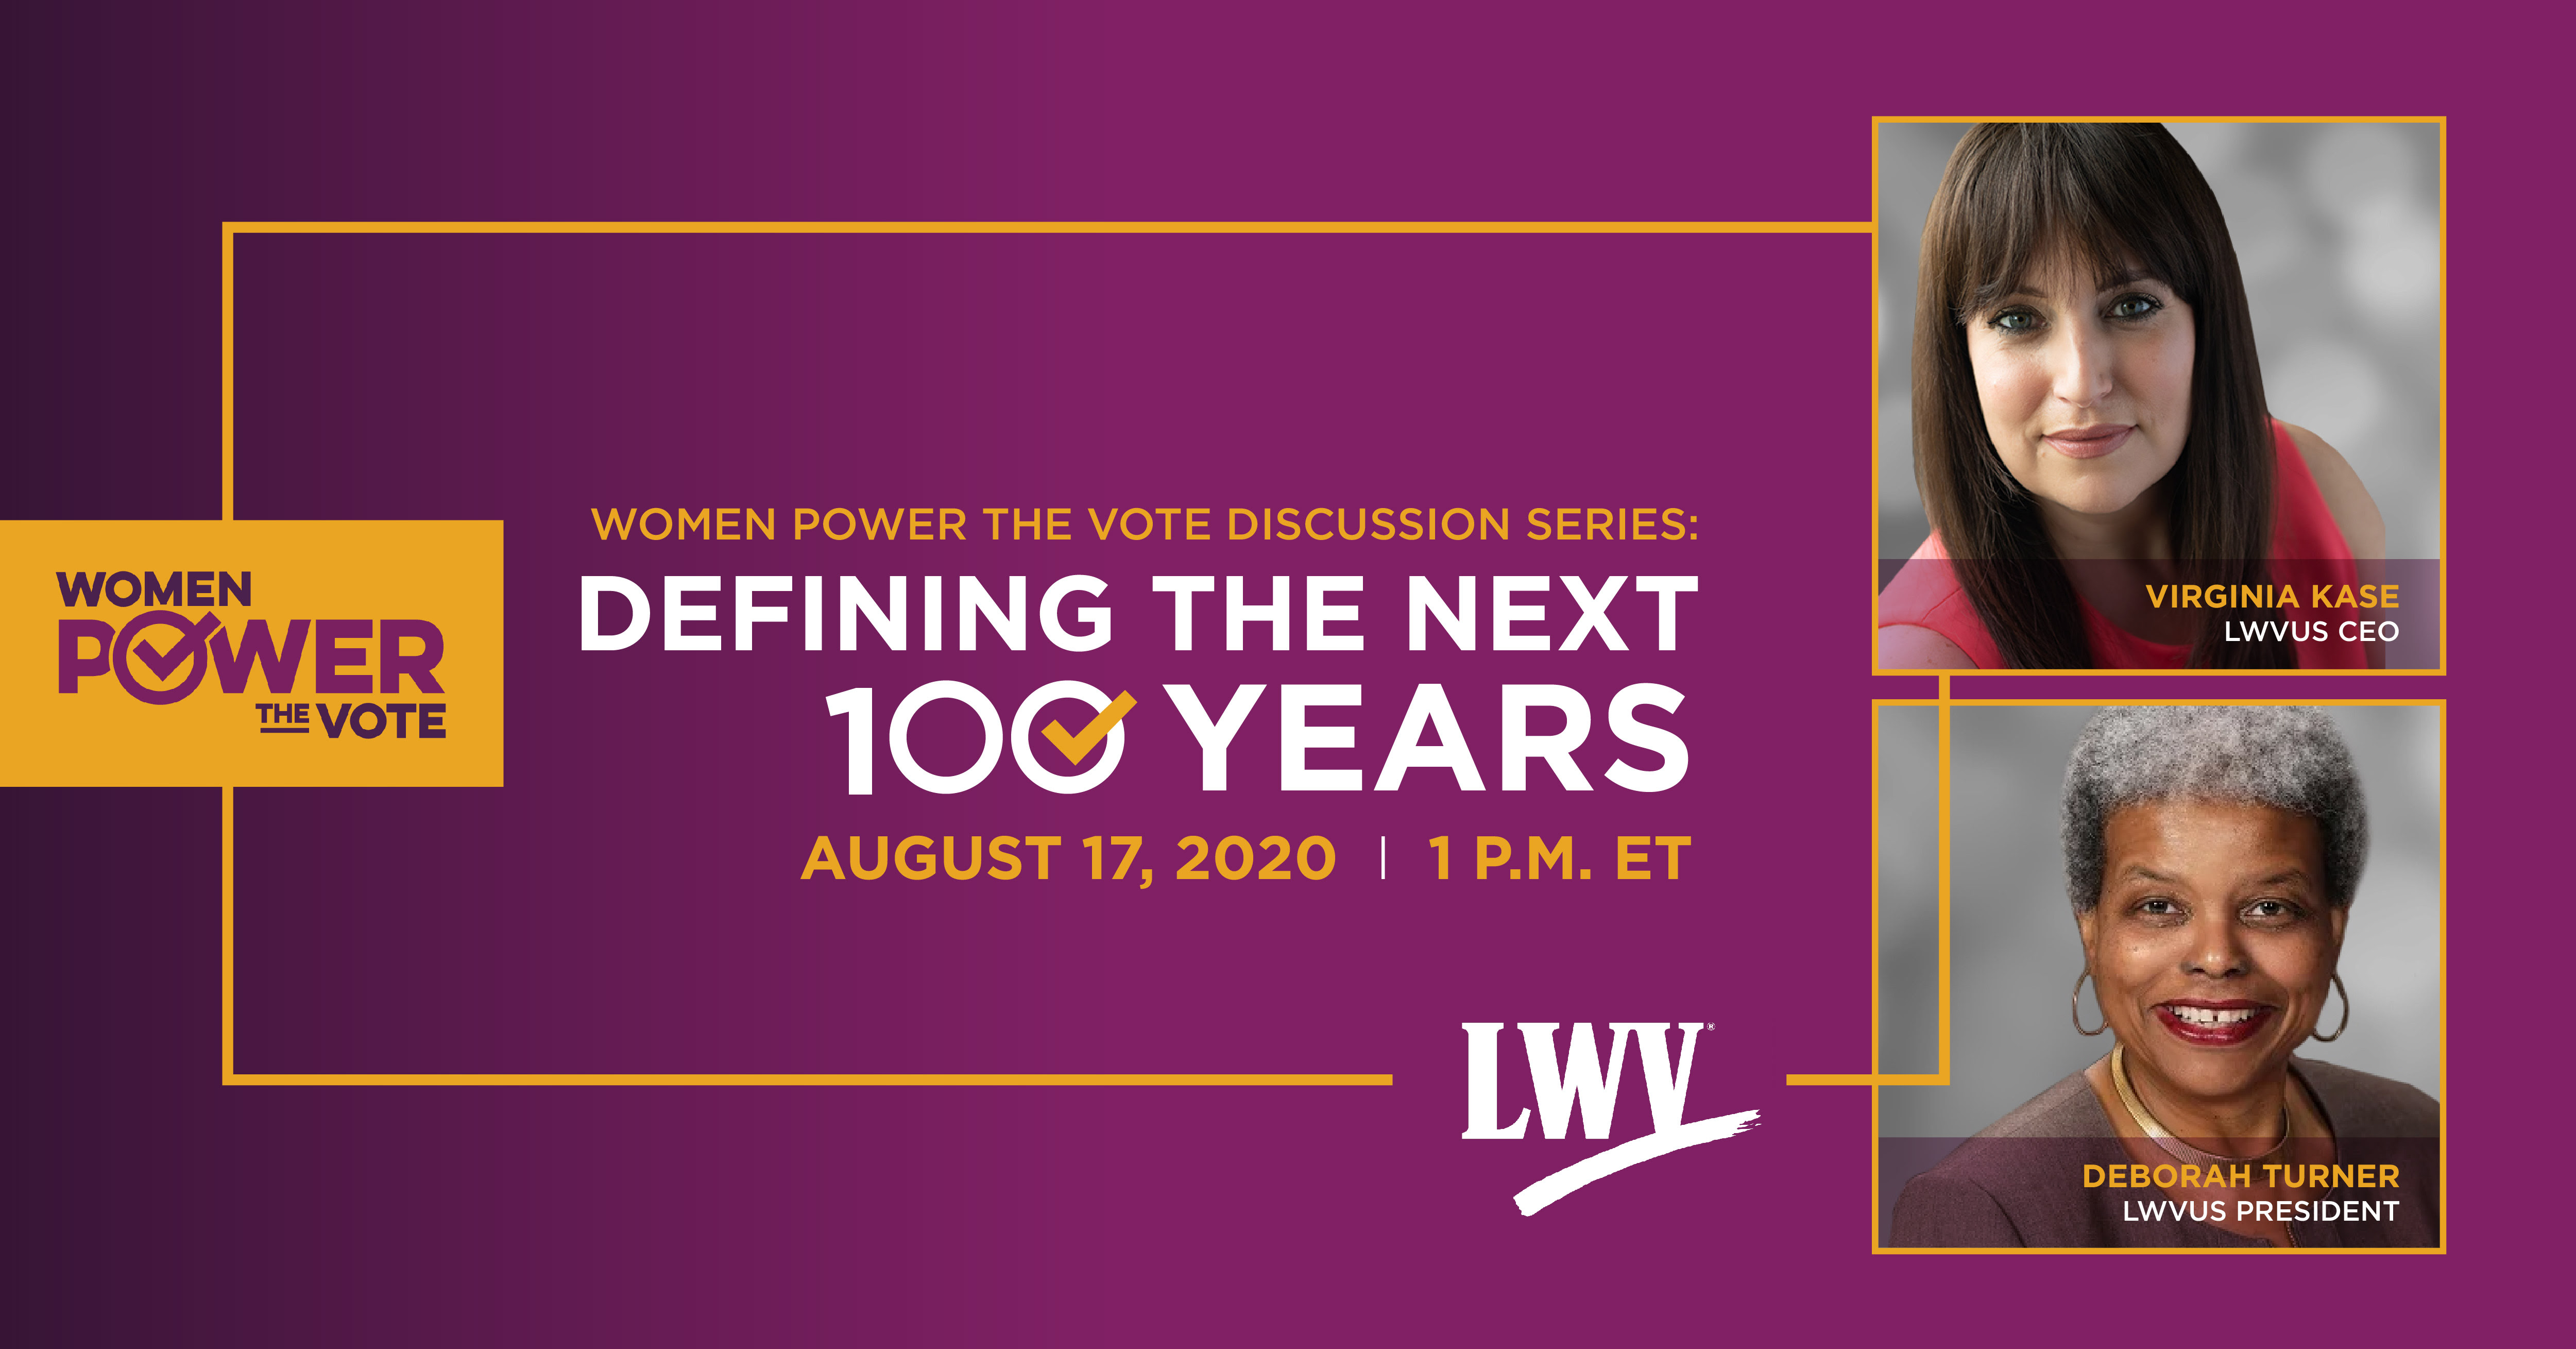 Graphic announcing the event with the Women Power the Vote logo